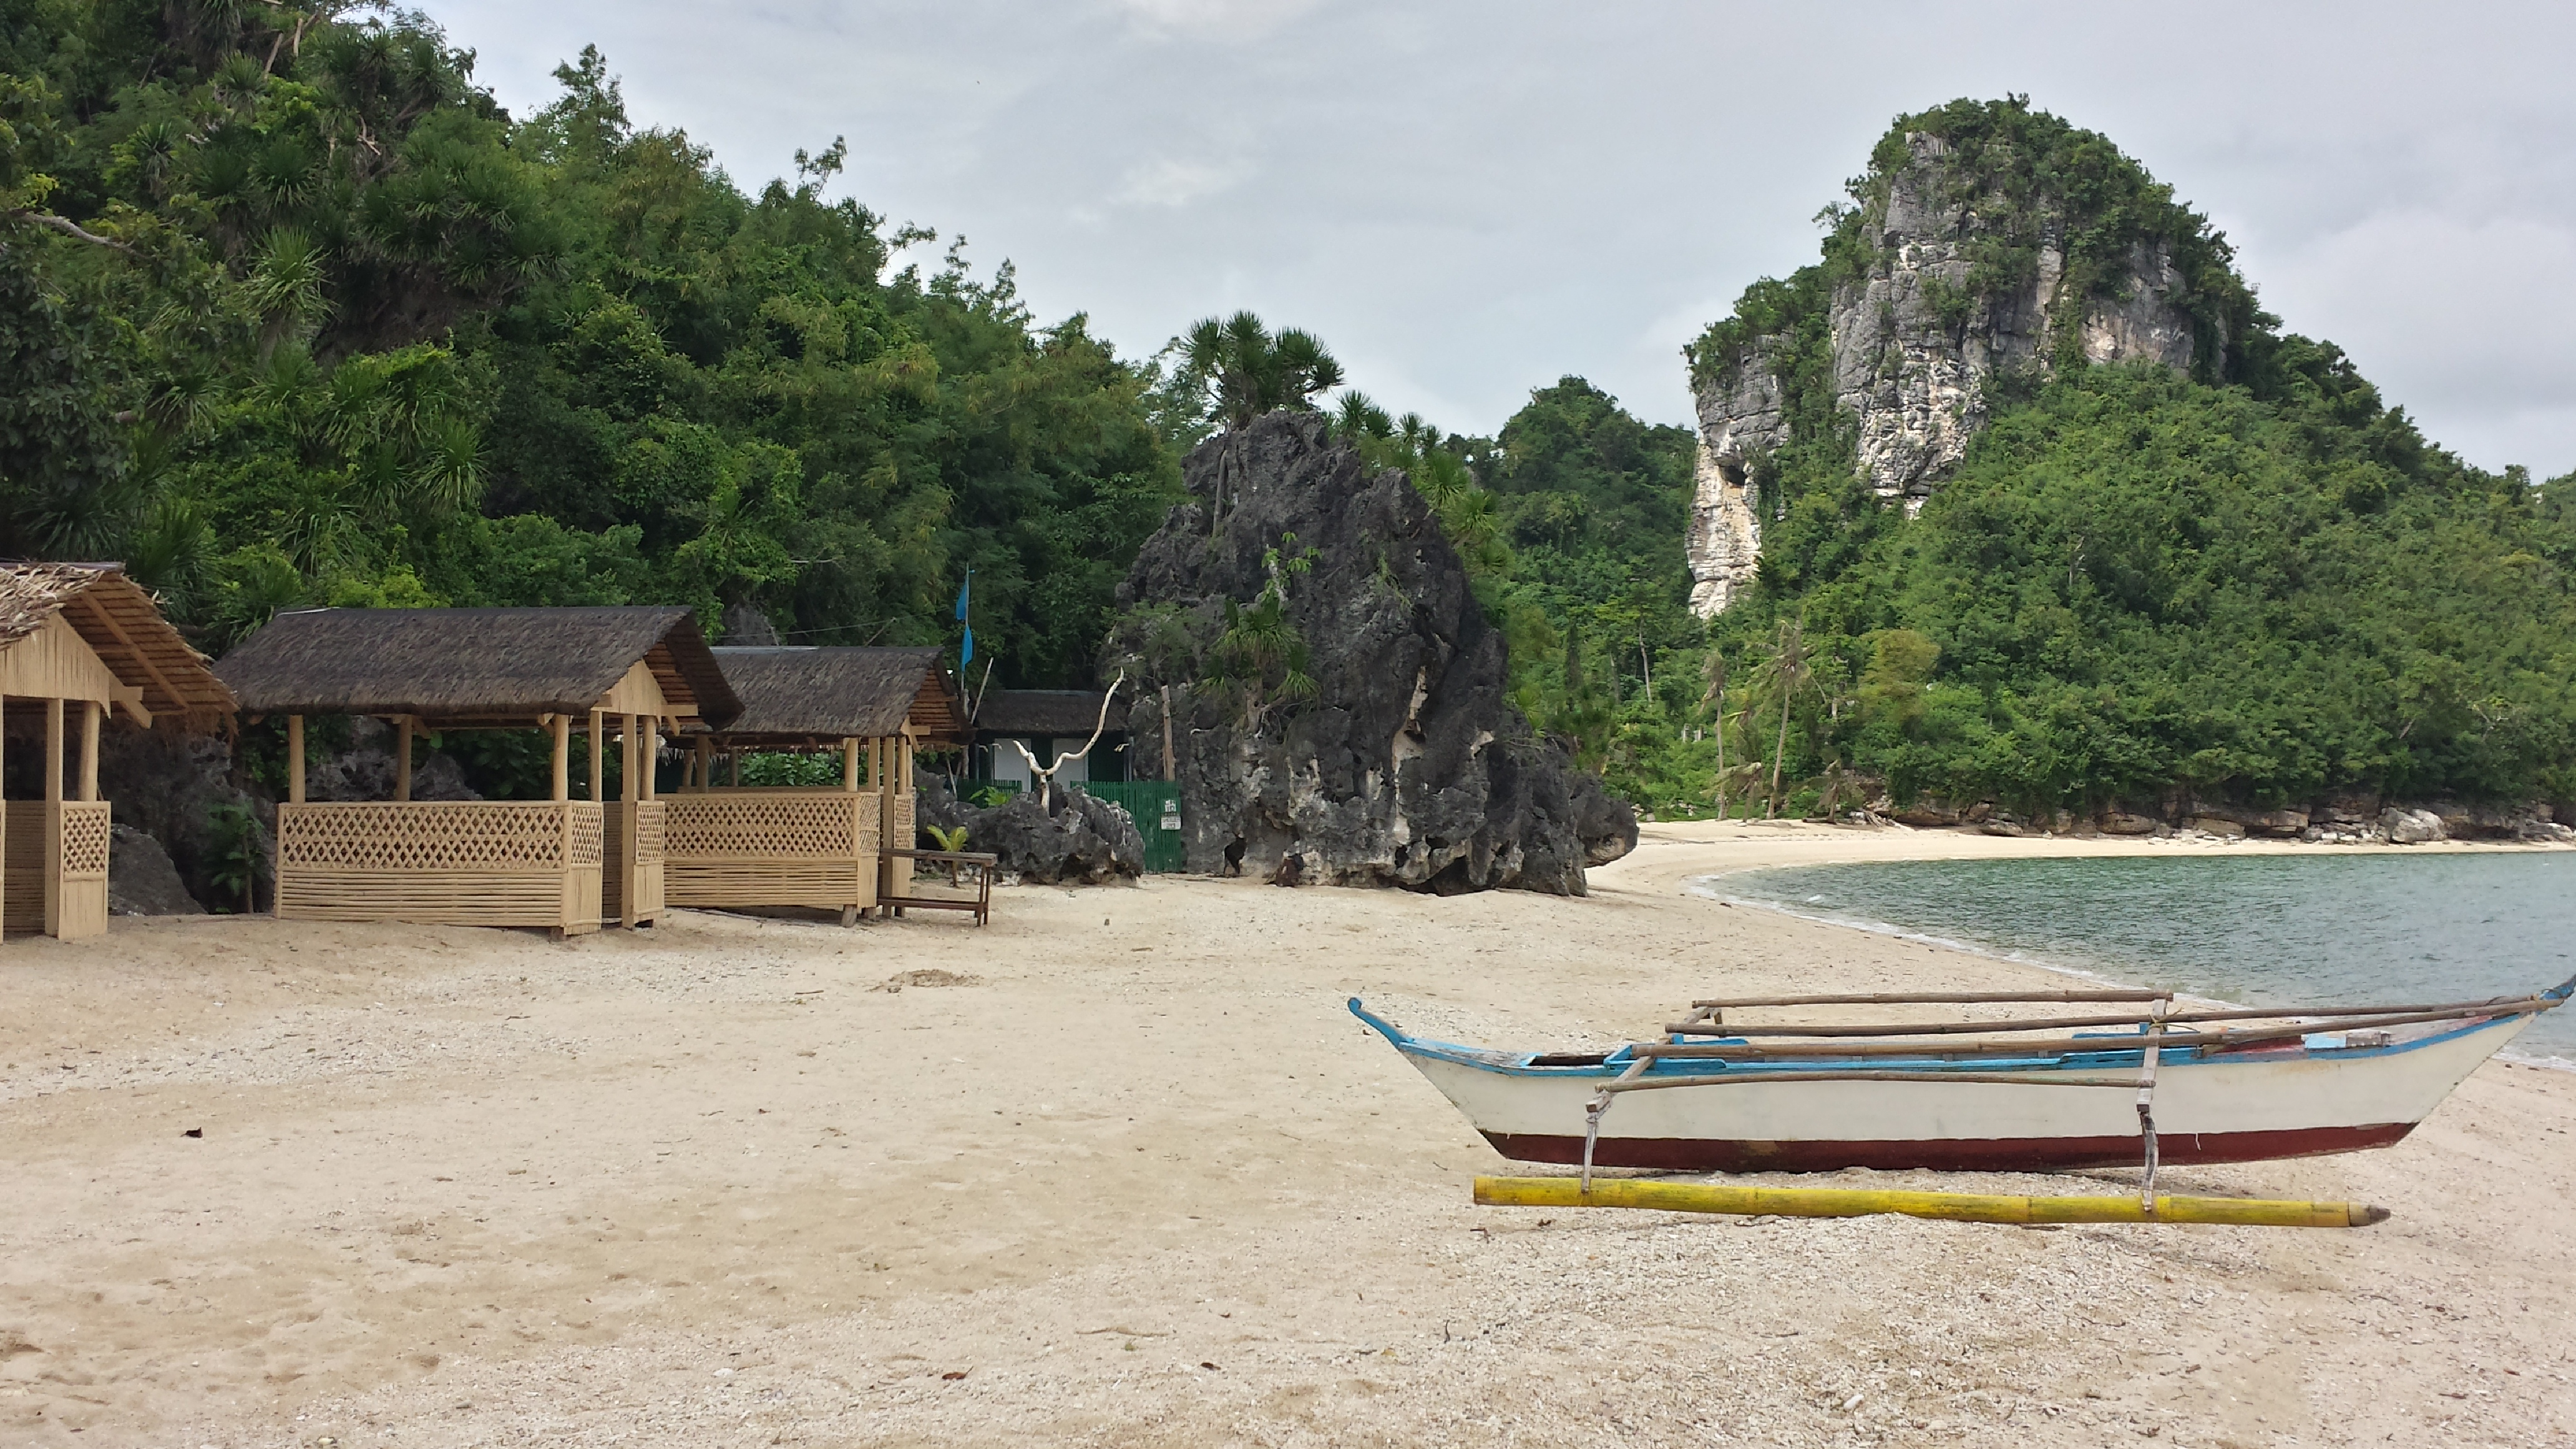 Borawan view on the more secluded east side of the beach